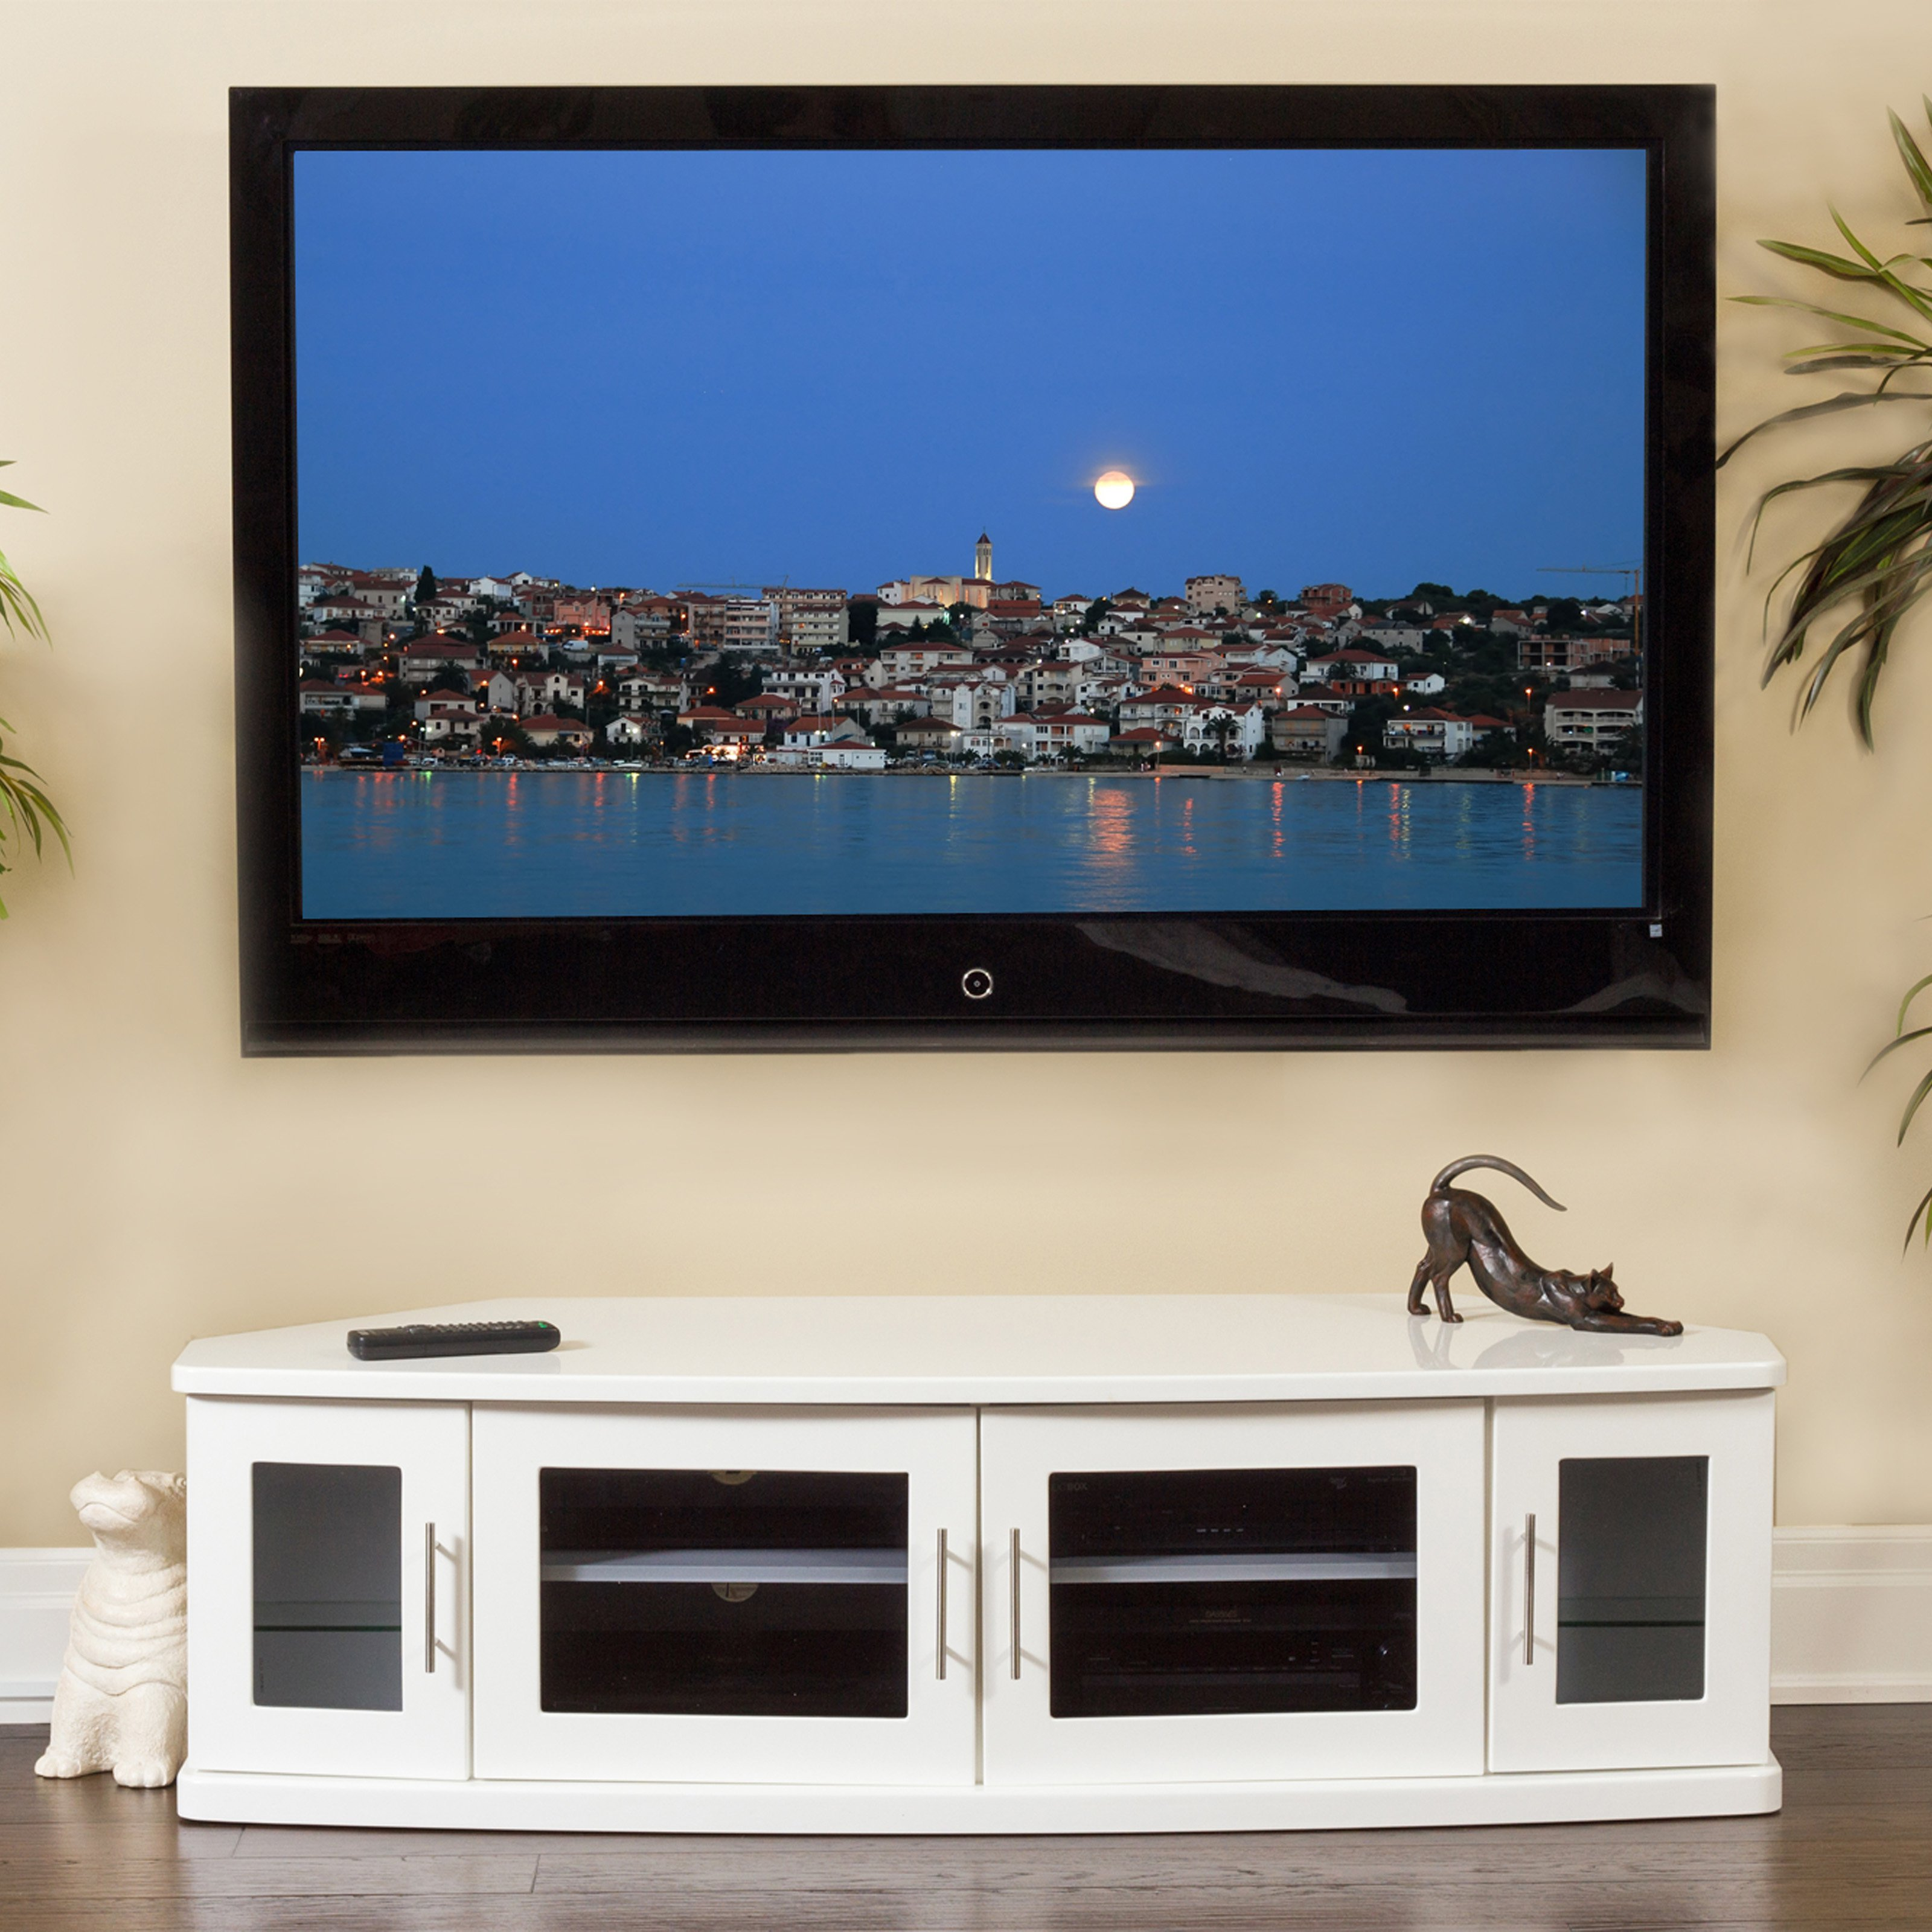 Plateau Newport 62 in. Corner Wood TV Stand - White Finish